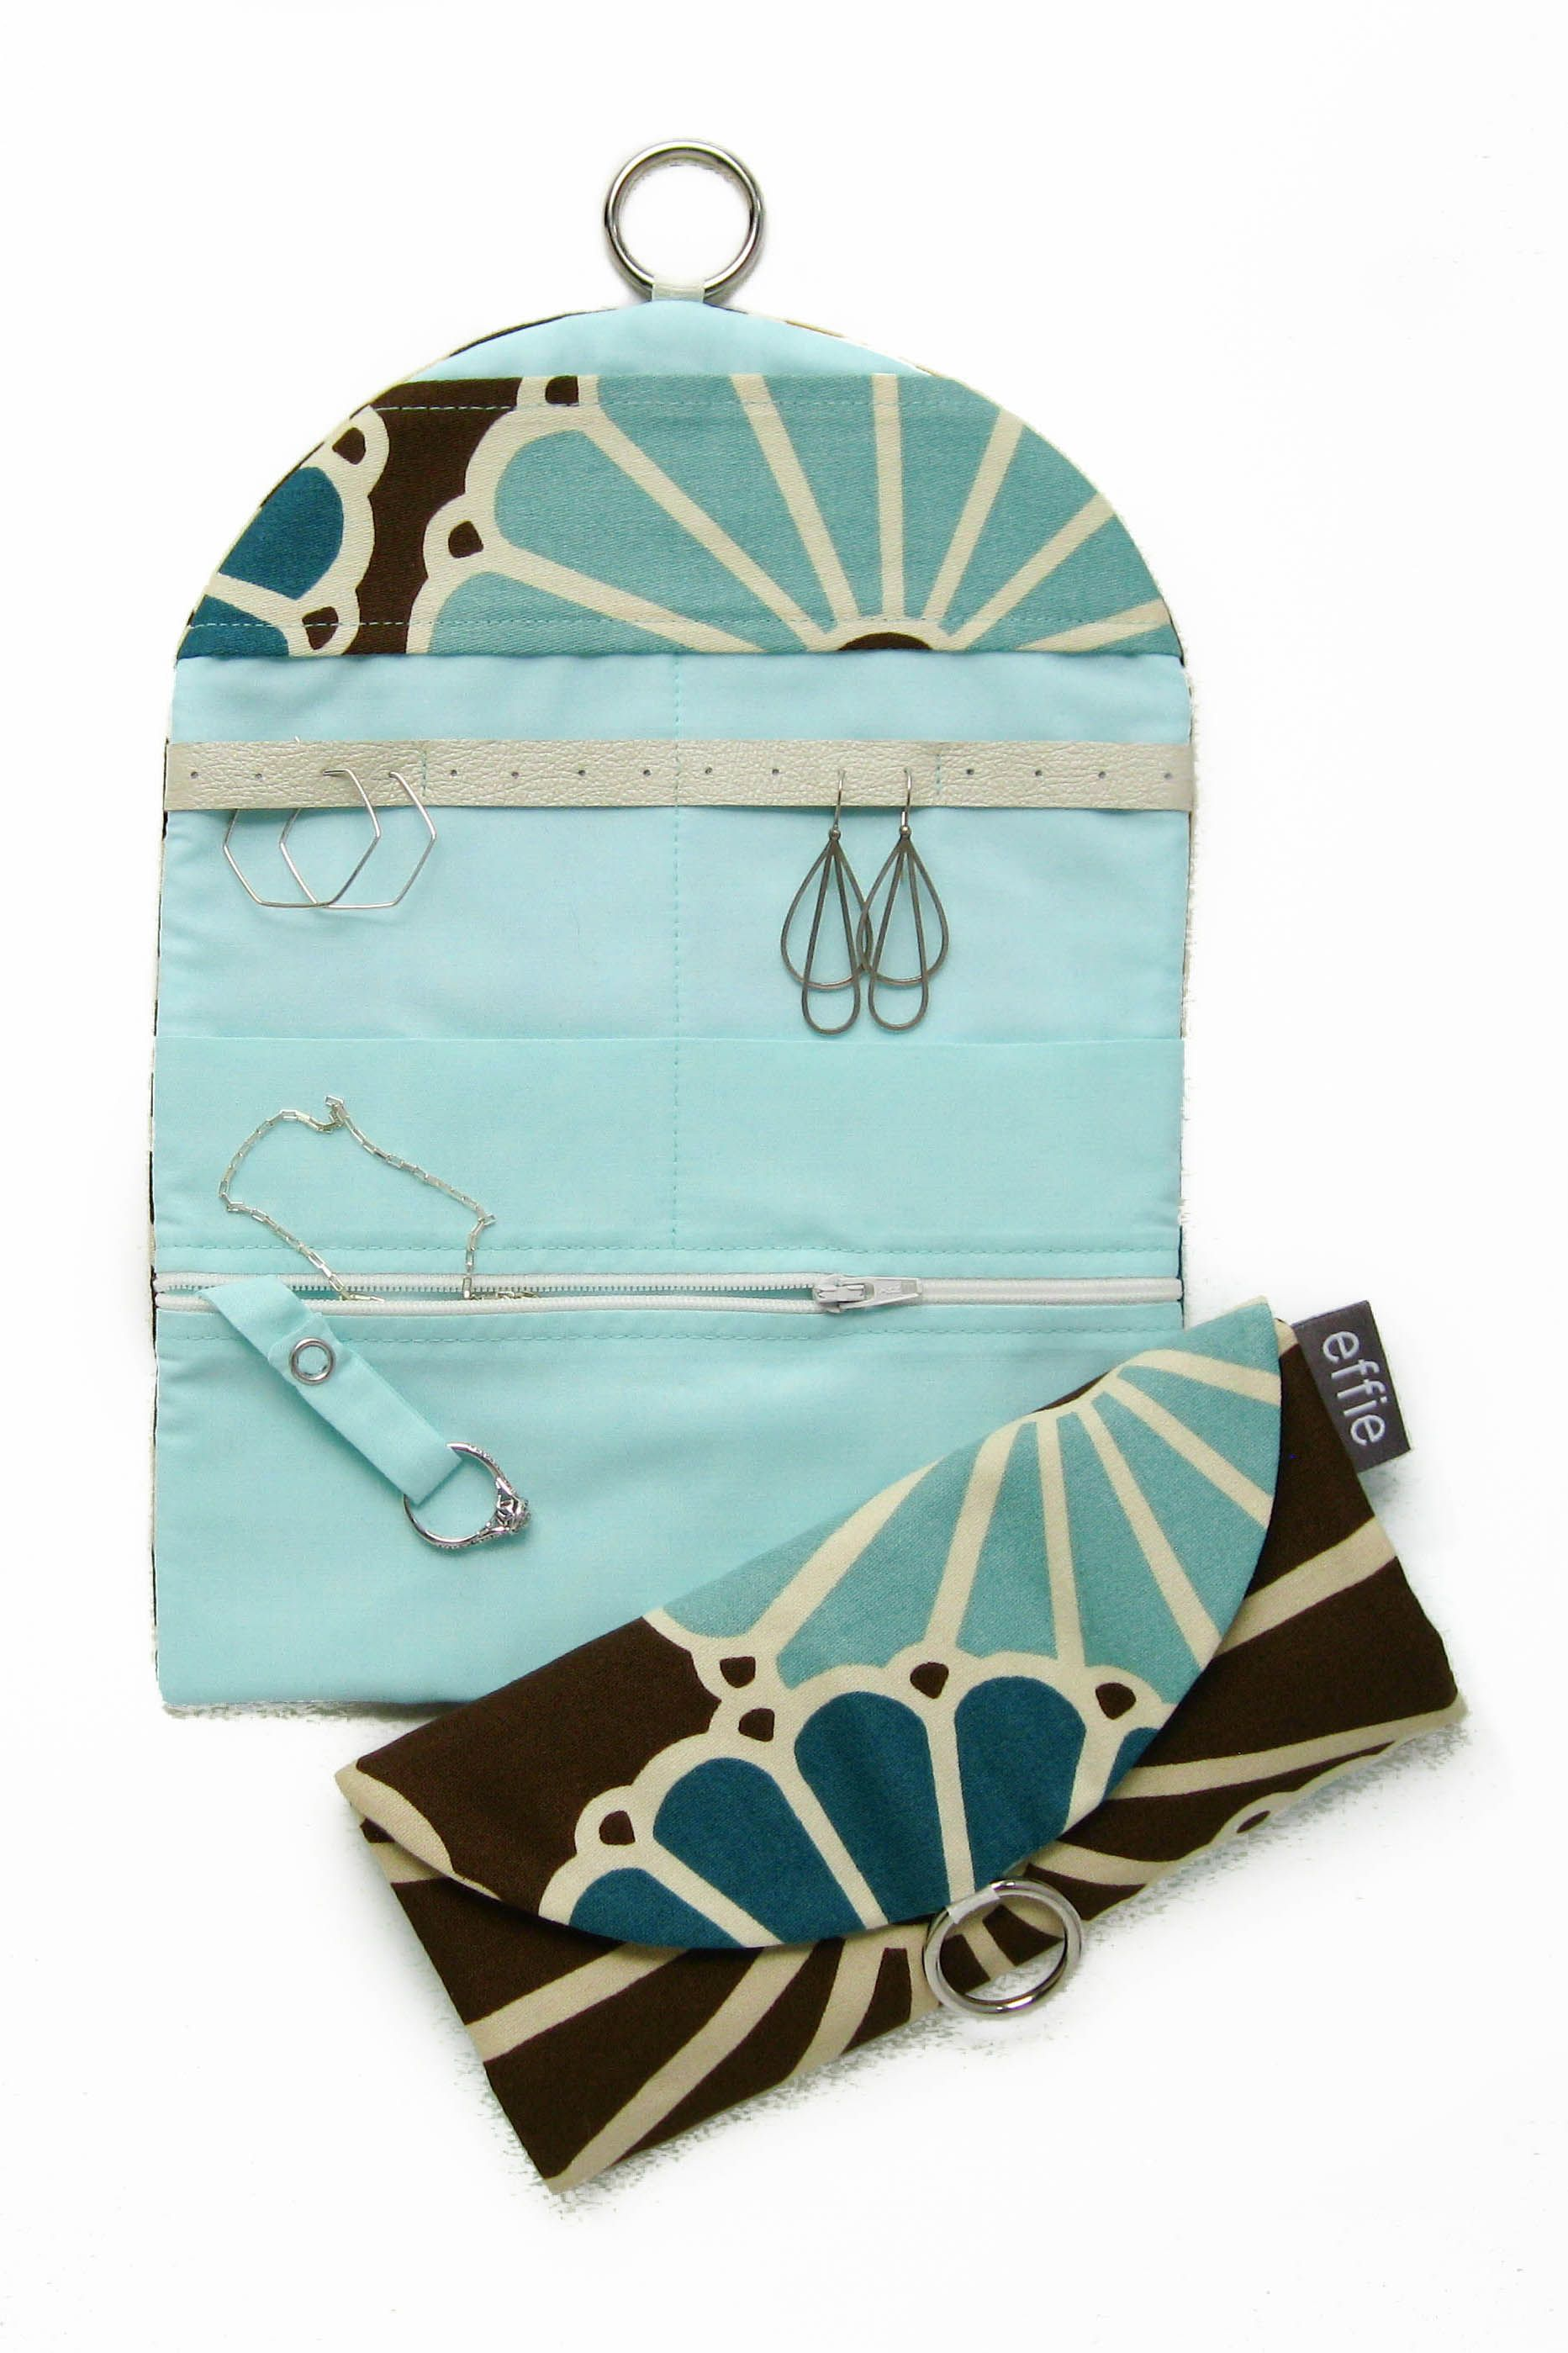 travel jewelry organizer - mod floral in brown aqua